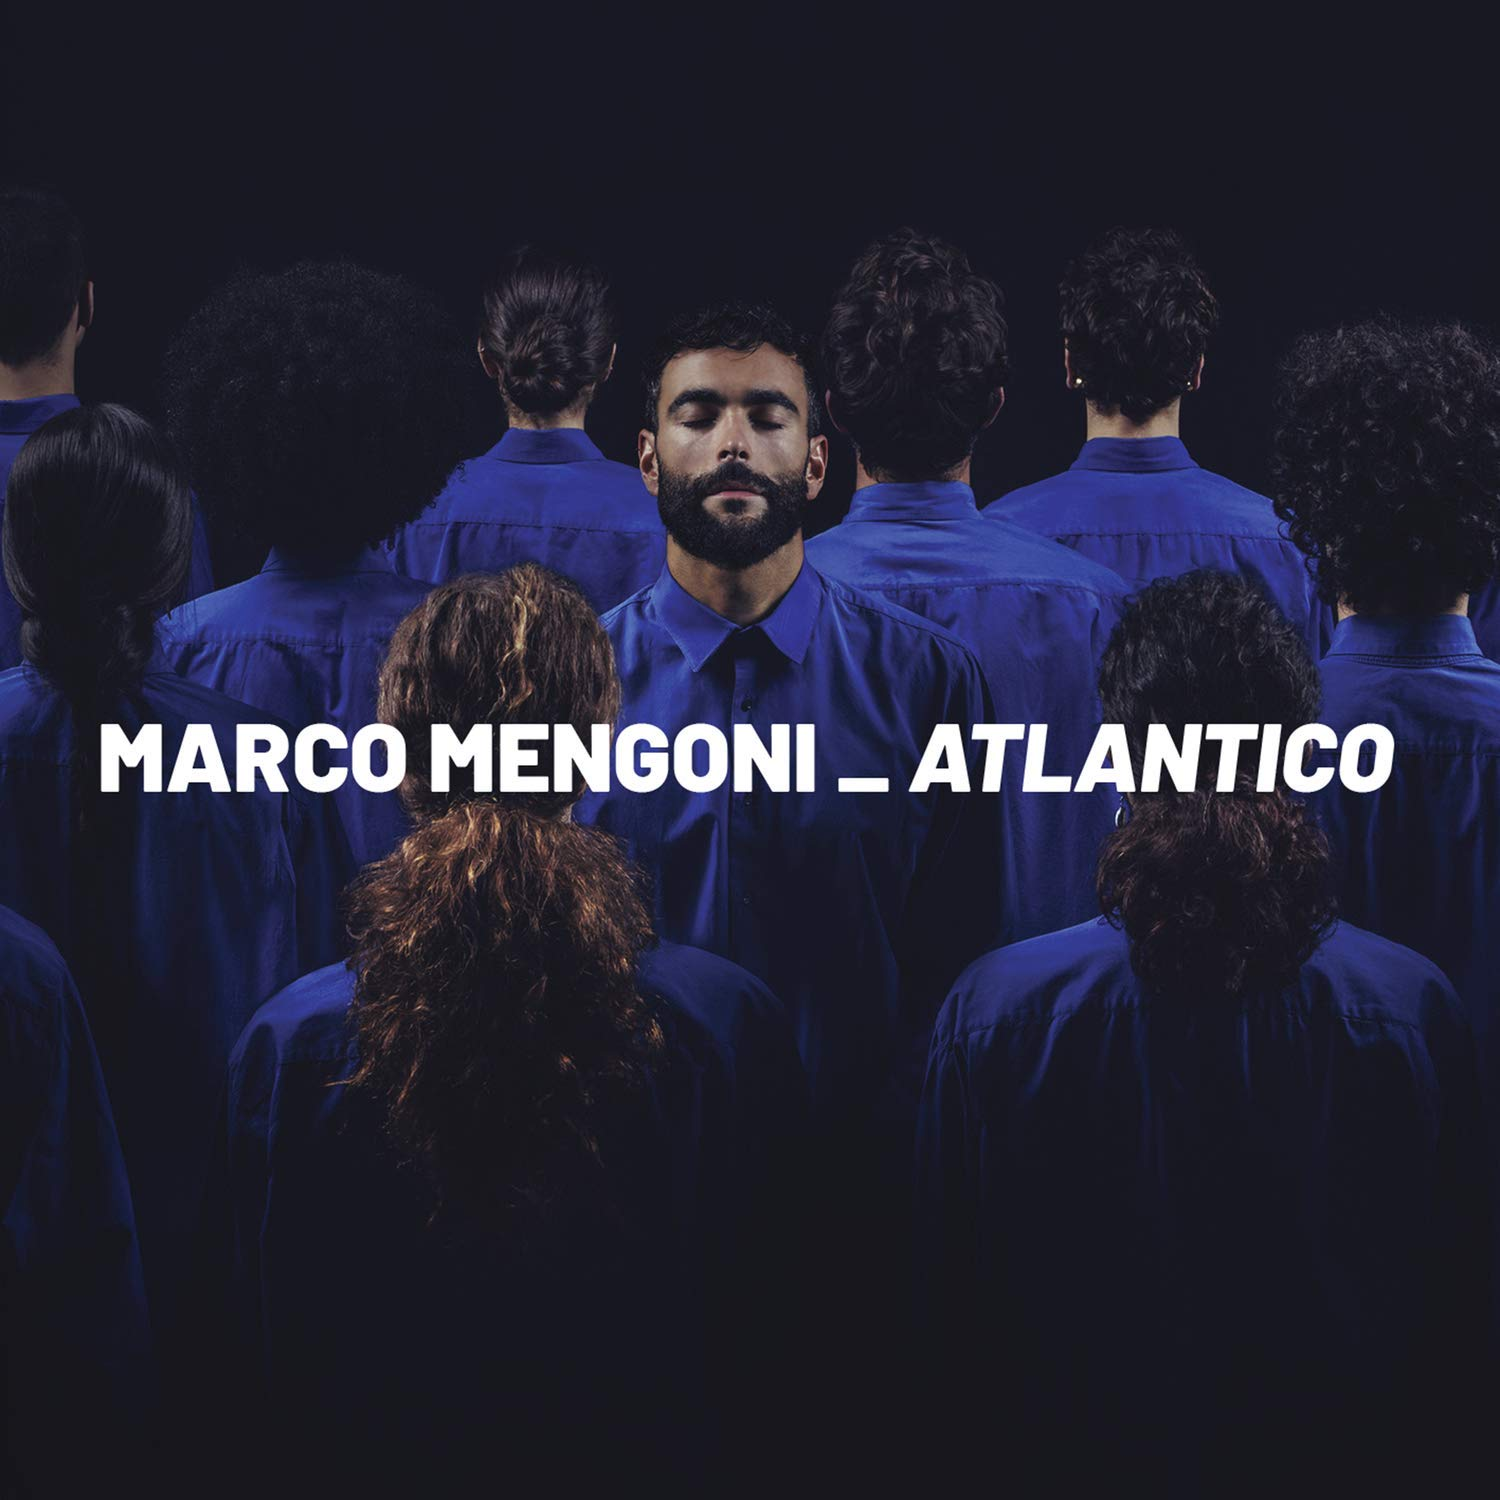 MARCO MENGONI - ATLANTICO (CD)